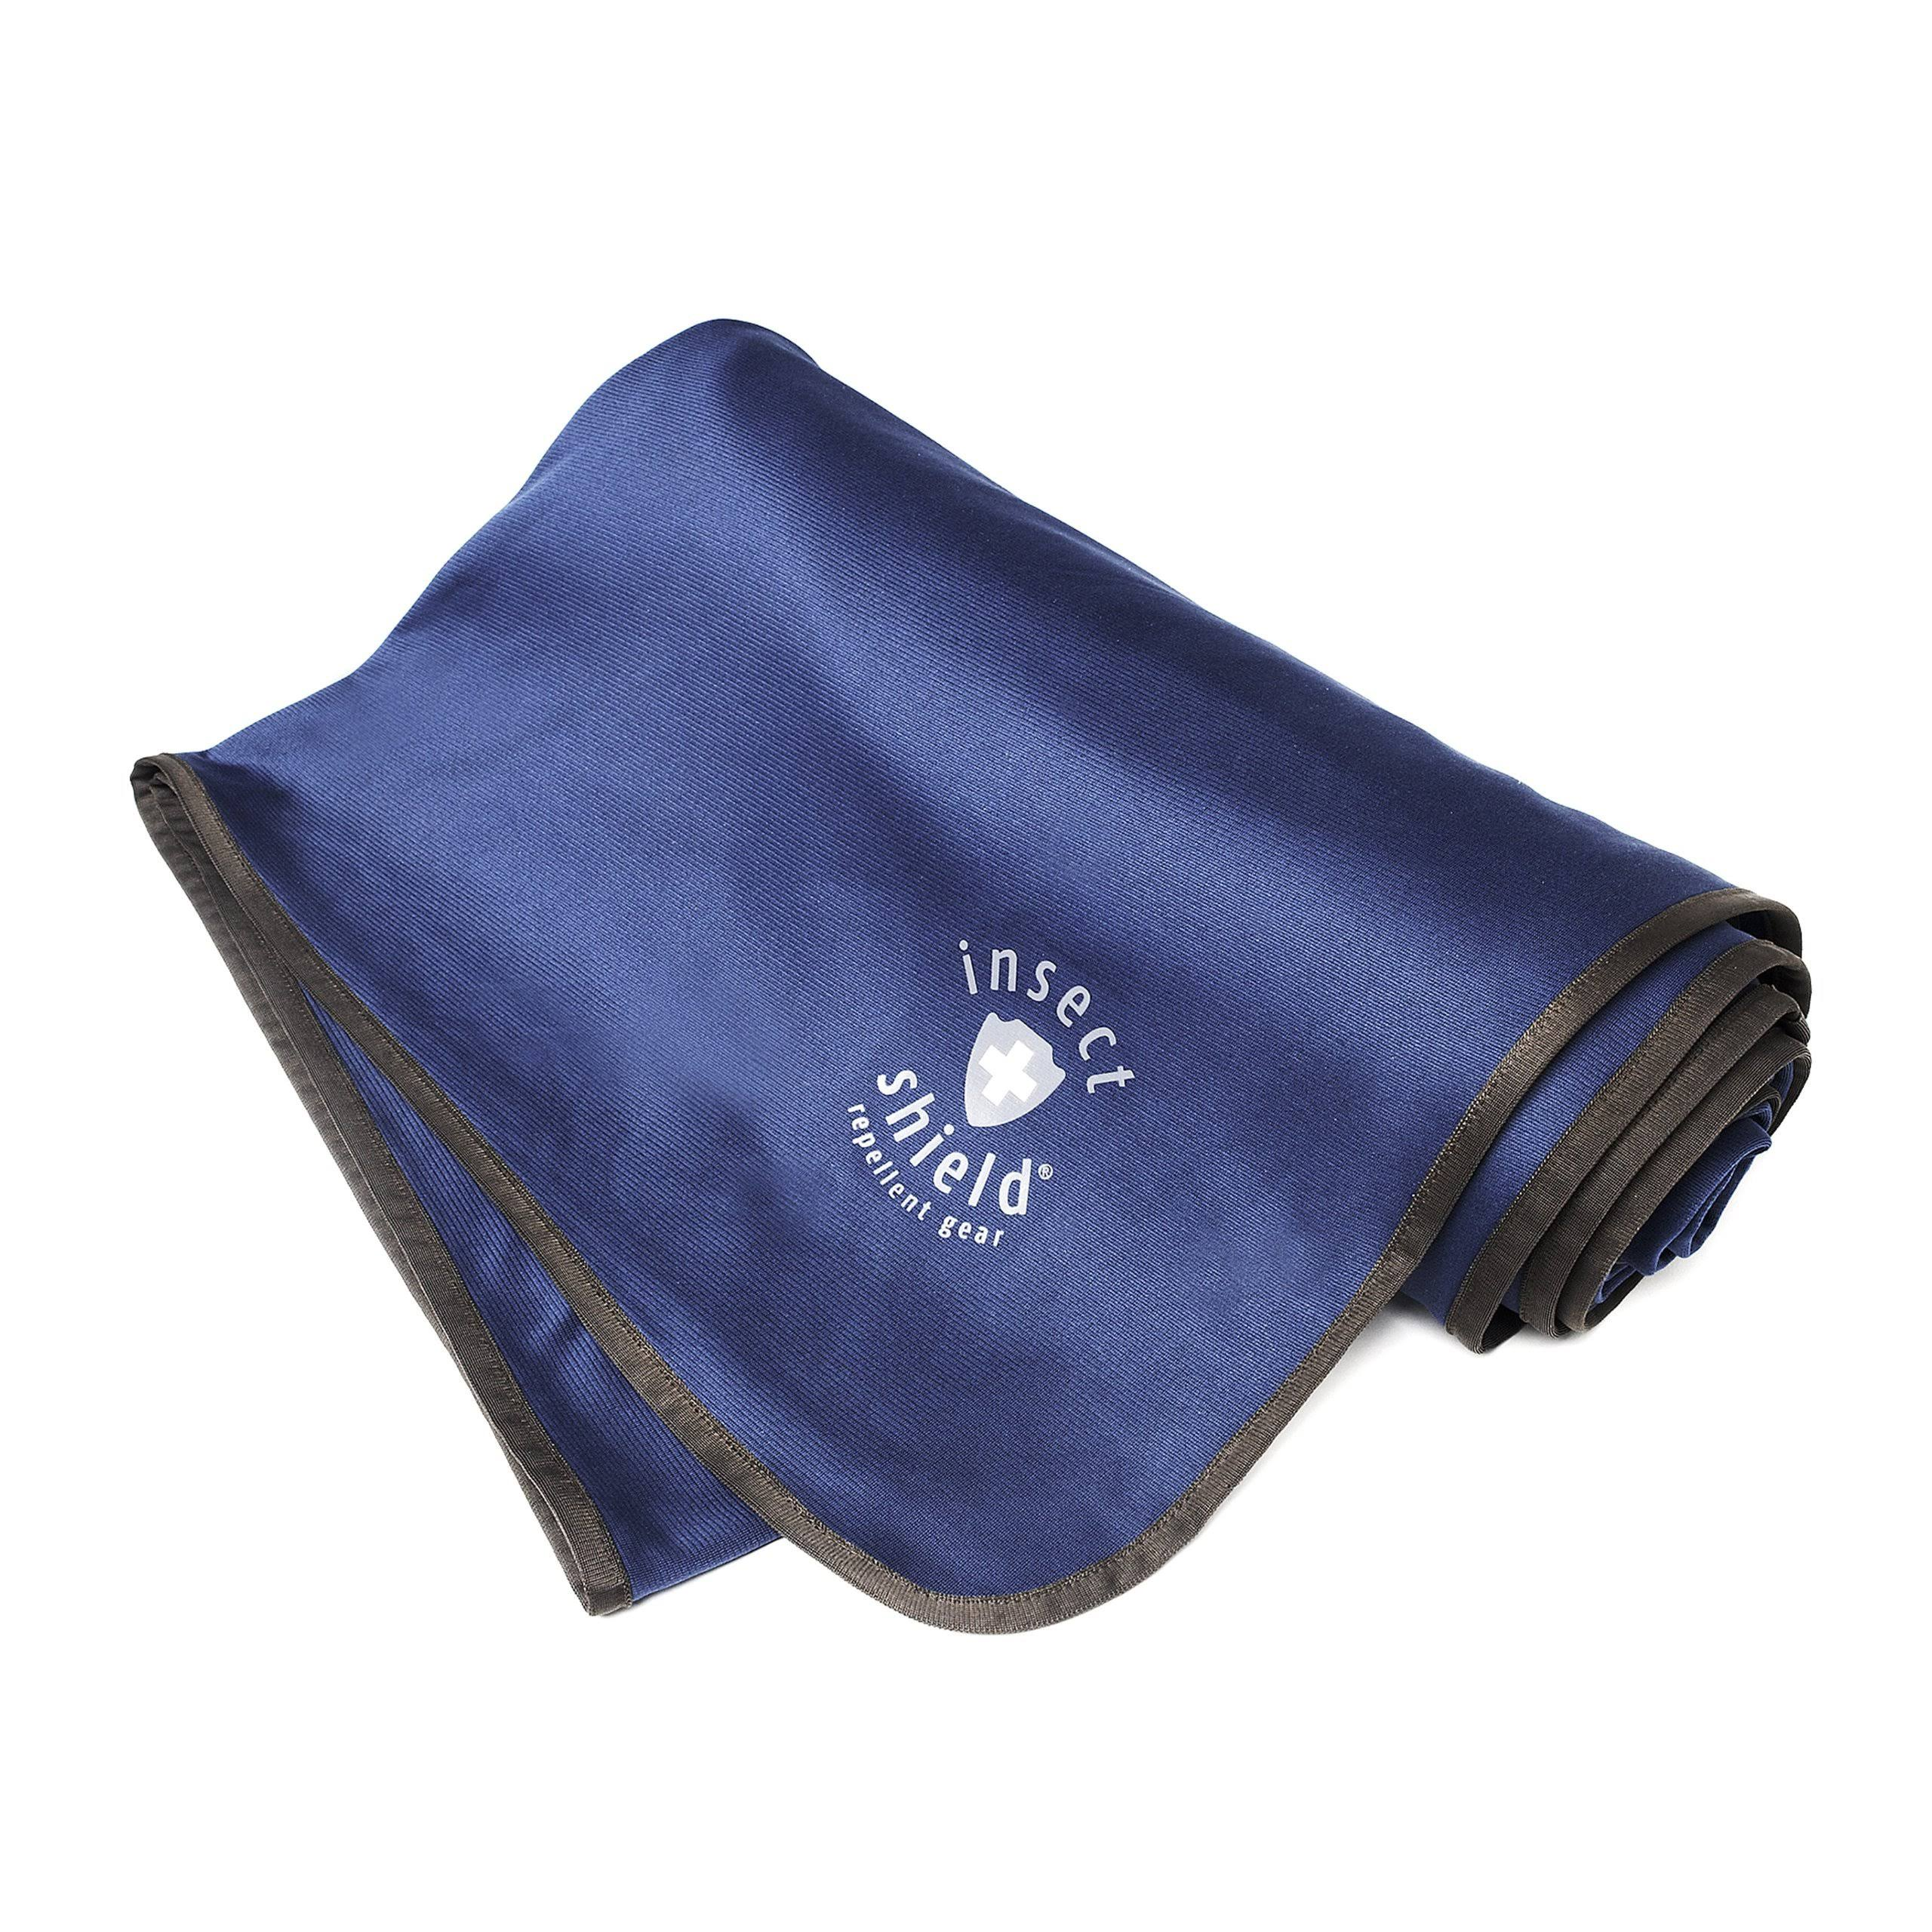 "Insect Shield Outdoor Blanket - Dark Blue, 56""x74"""